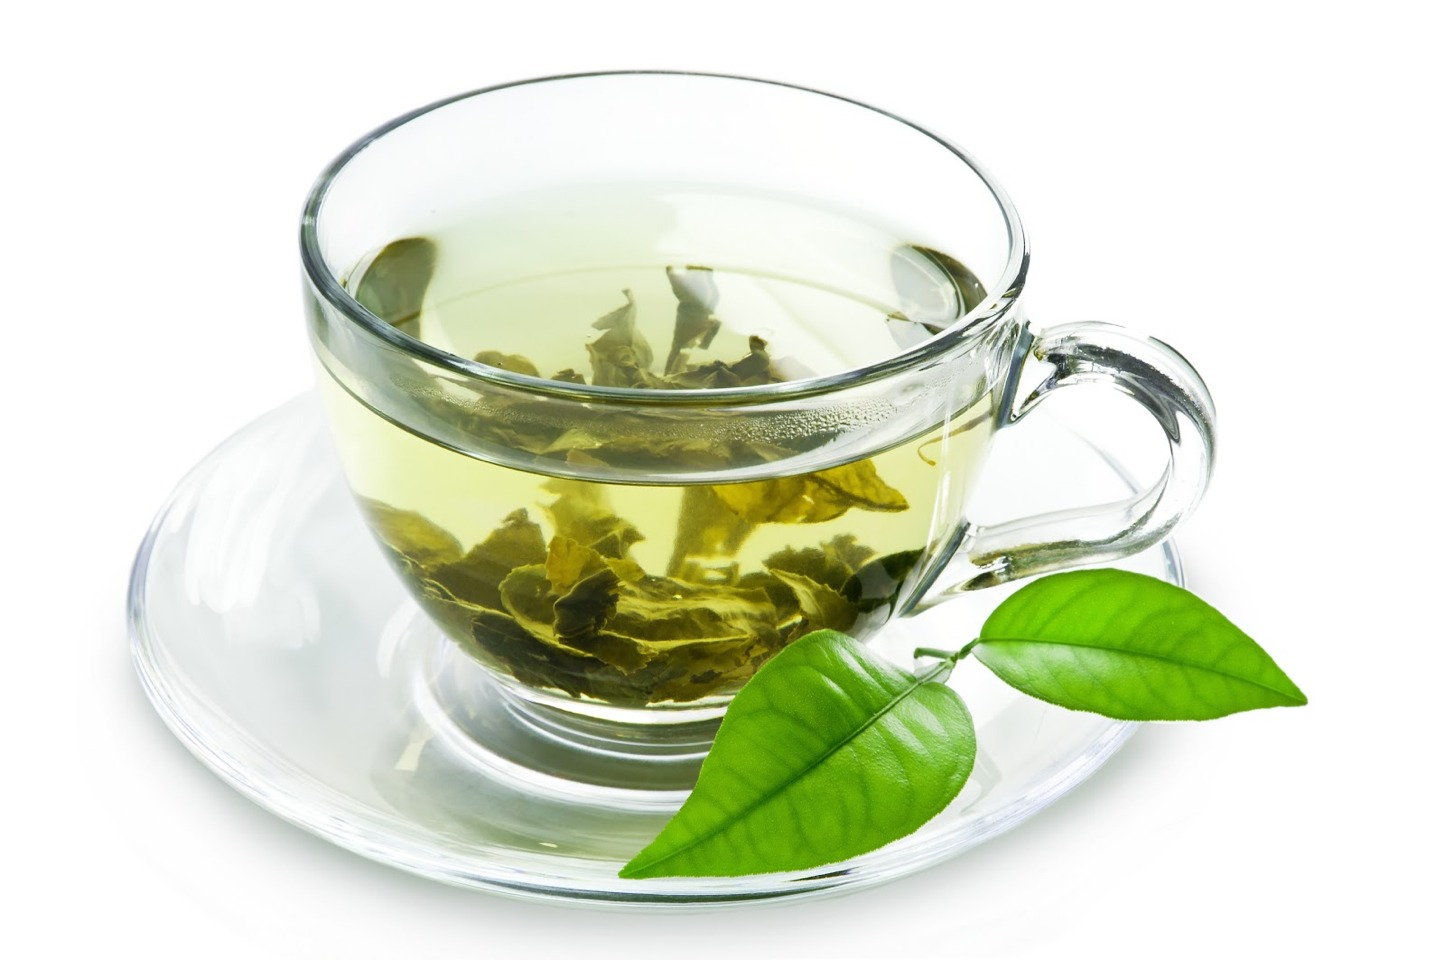 Green tea is not only good for your insides - it's great for your hair and skin too! It promotes hair growth as it contains essential vitamins and minerals and antioxidants which promote hair growth. Drink a cup a day to notice results.